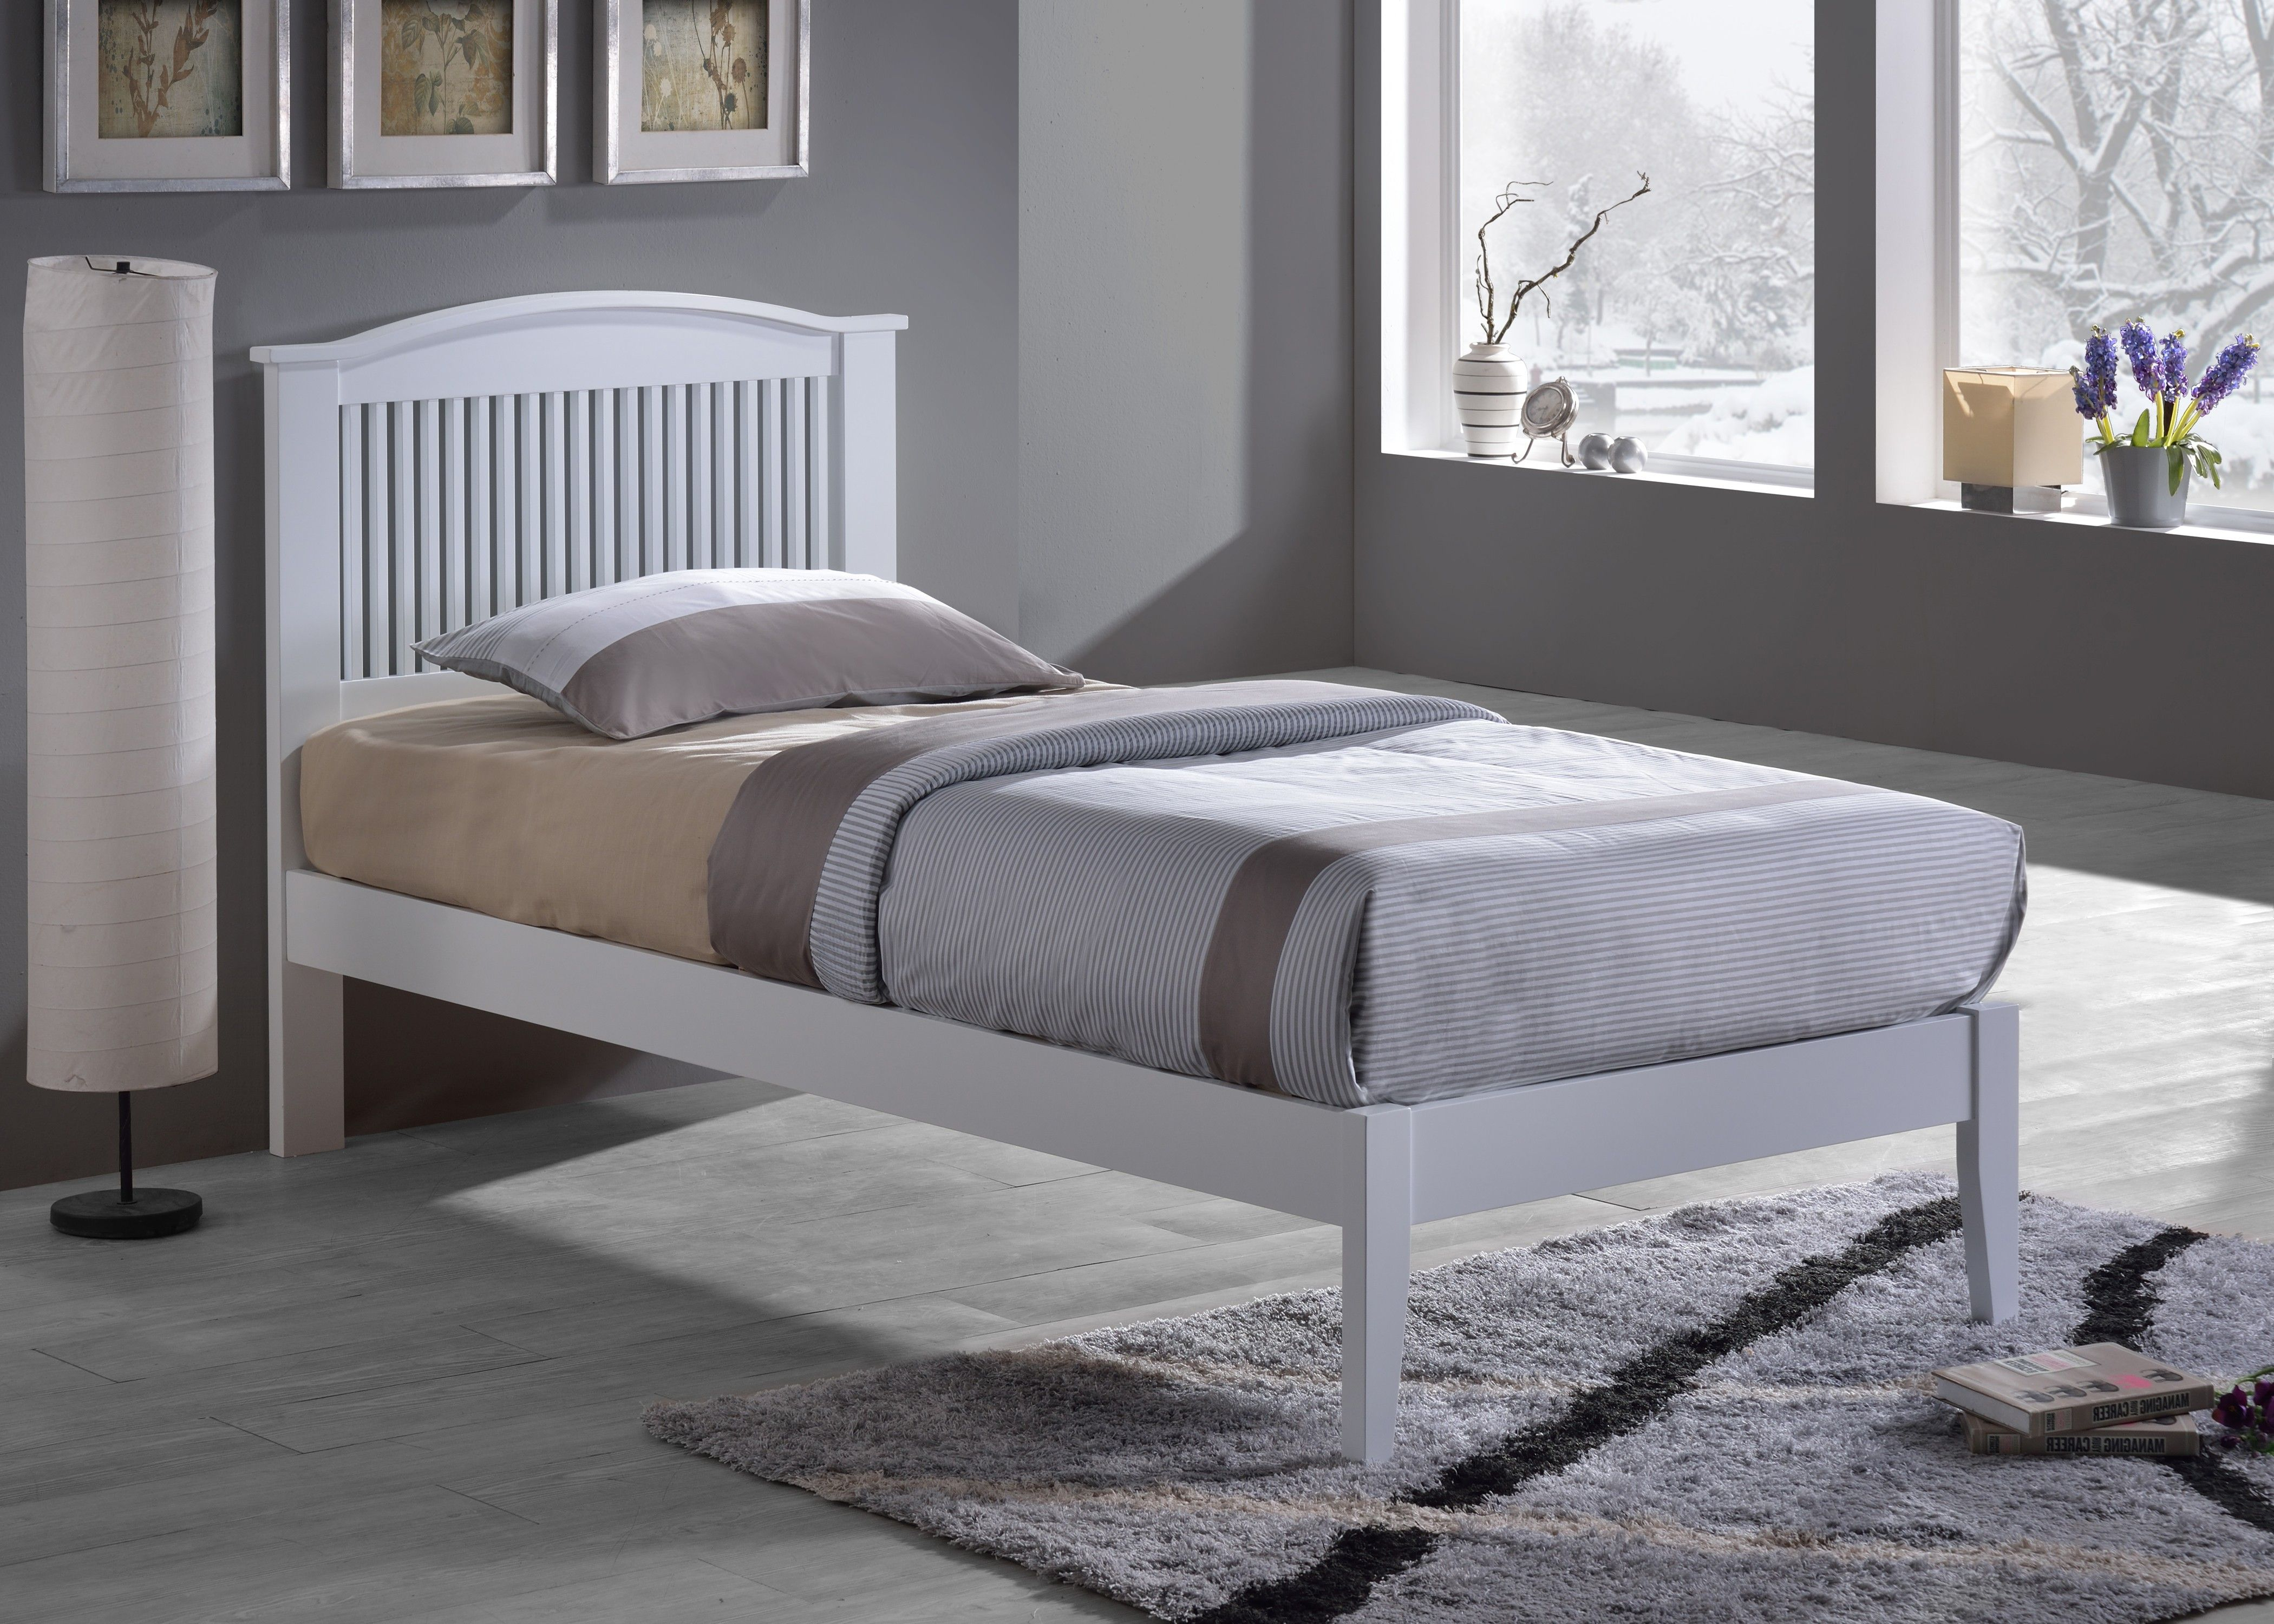 IQ Sierra White Single Bed (With images) Single bed